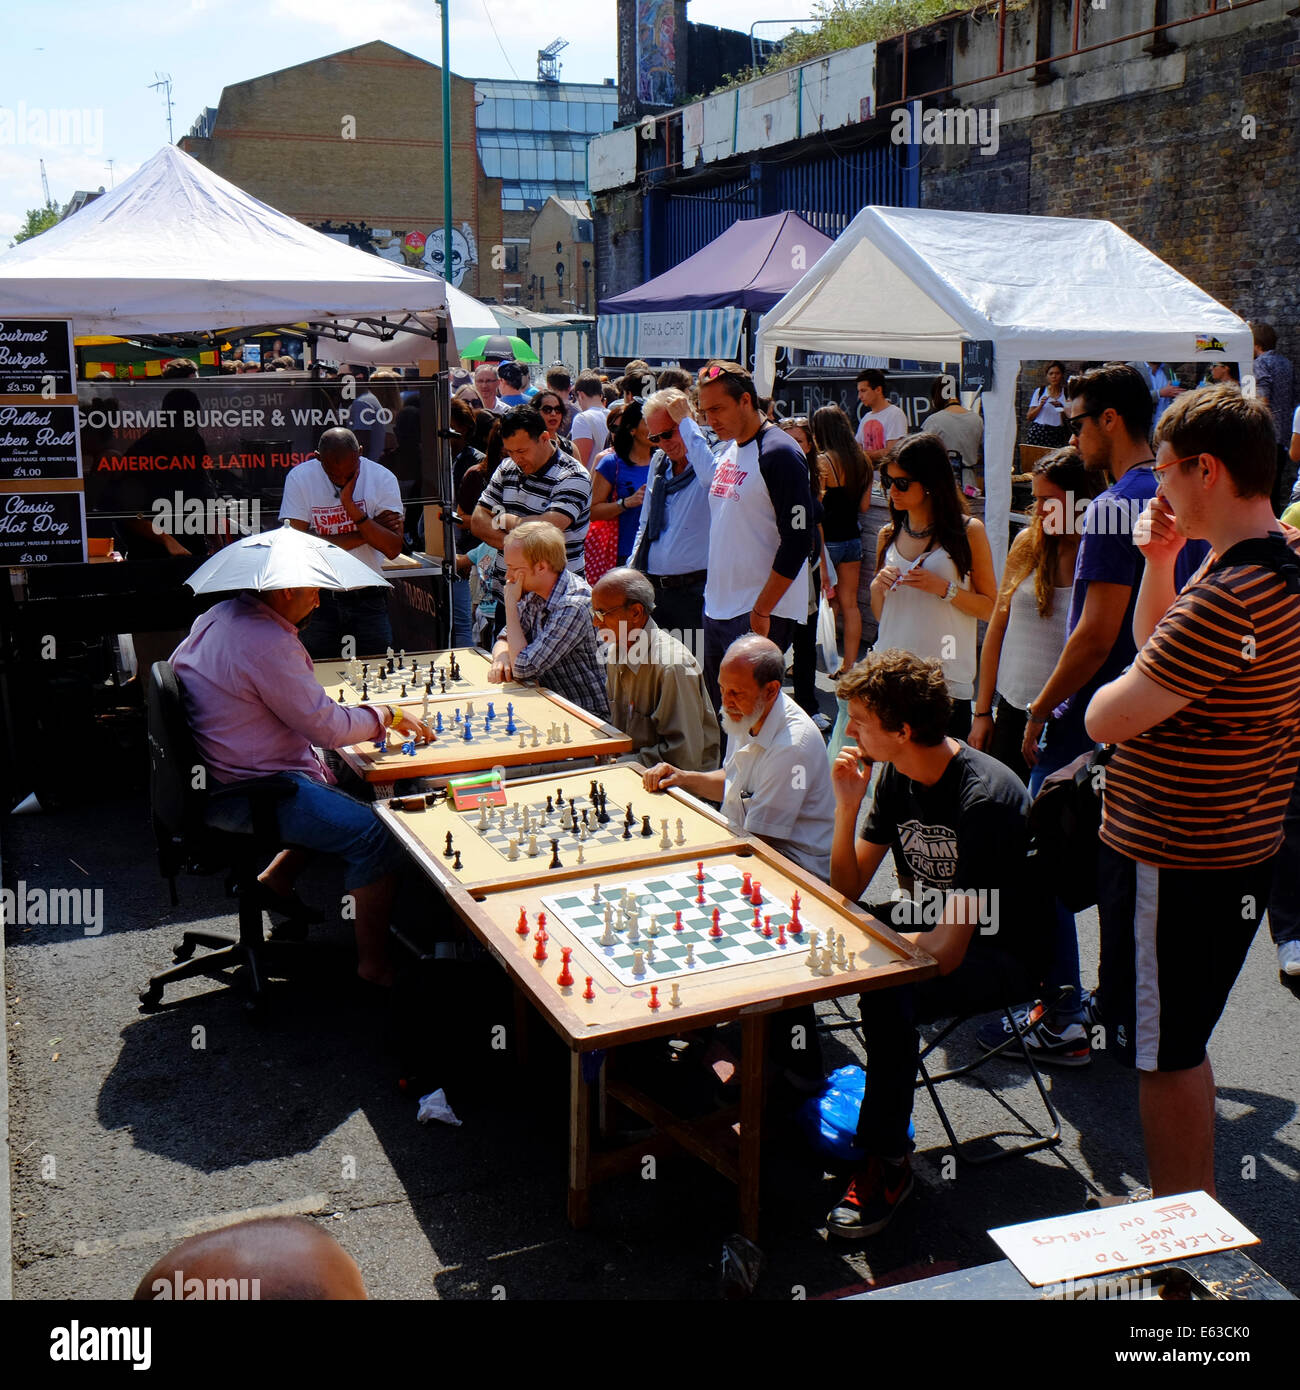 man playing chess against 4 others, all at the same time in Brick lane, Shoreditch, London, England - Stock Image